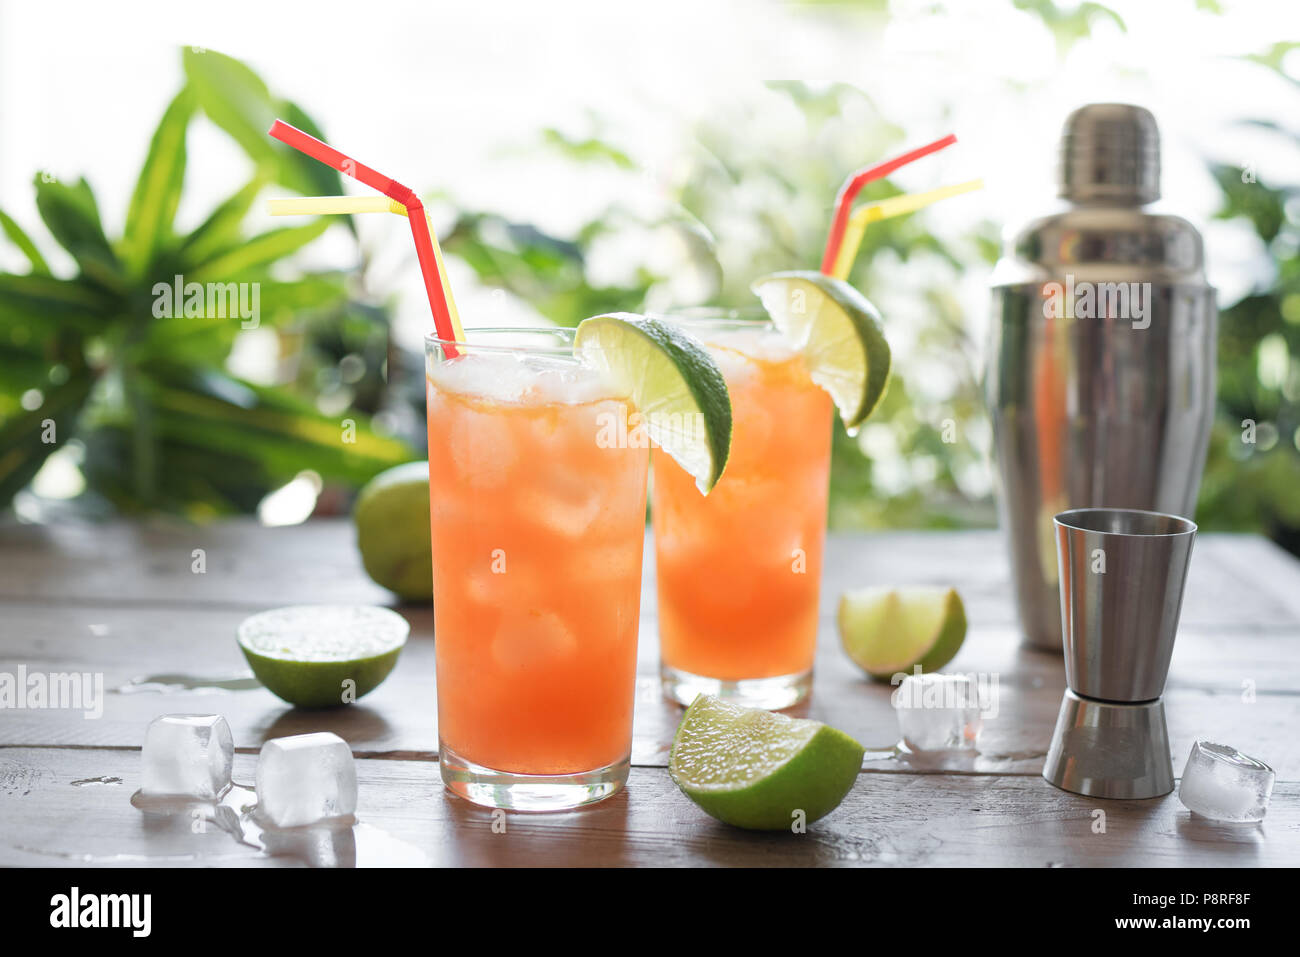 Zombie Cocktail with Rum, garnished with lime. Cold sweet summer fruit red alcohol cocktail, refreshing drink on wooden table, copy space. - Stock Image